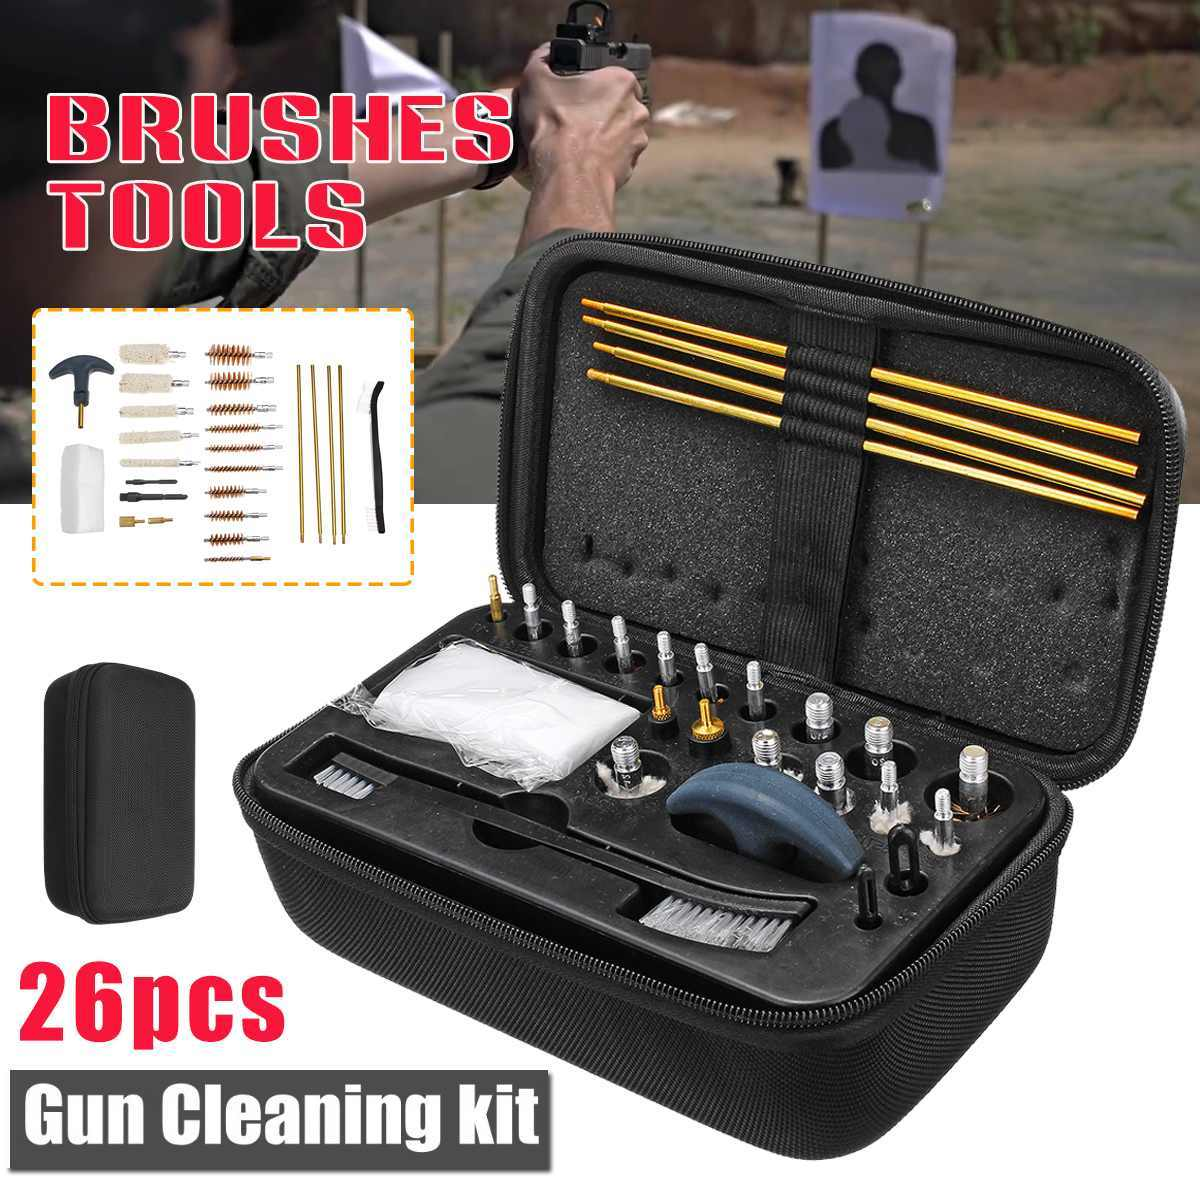 Universal Gun Cleaning Kit Voor Geweer Pistool Pistool Shotgun Brush Tool Draagbare Guns Cleaning Set Schieten Jacht Accessoires